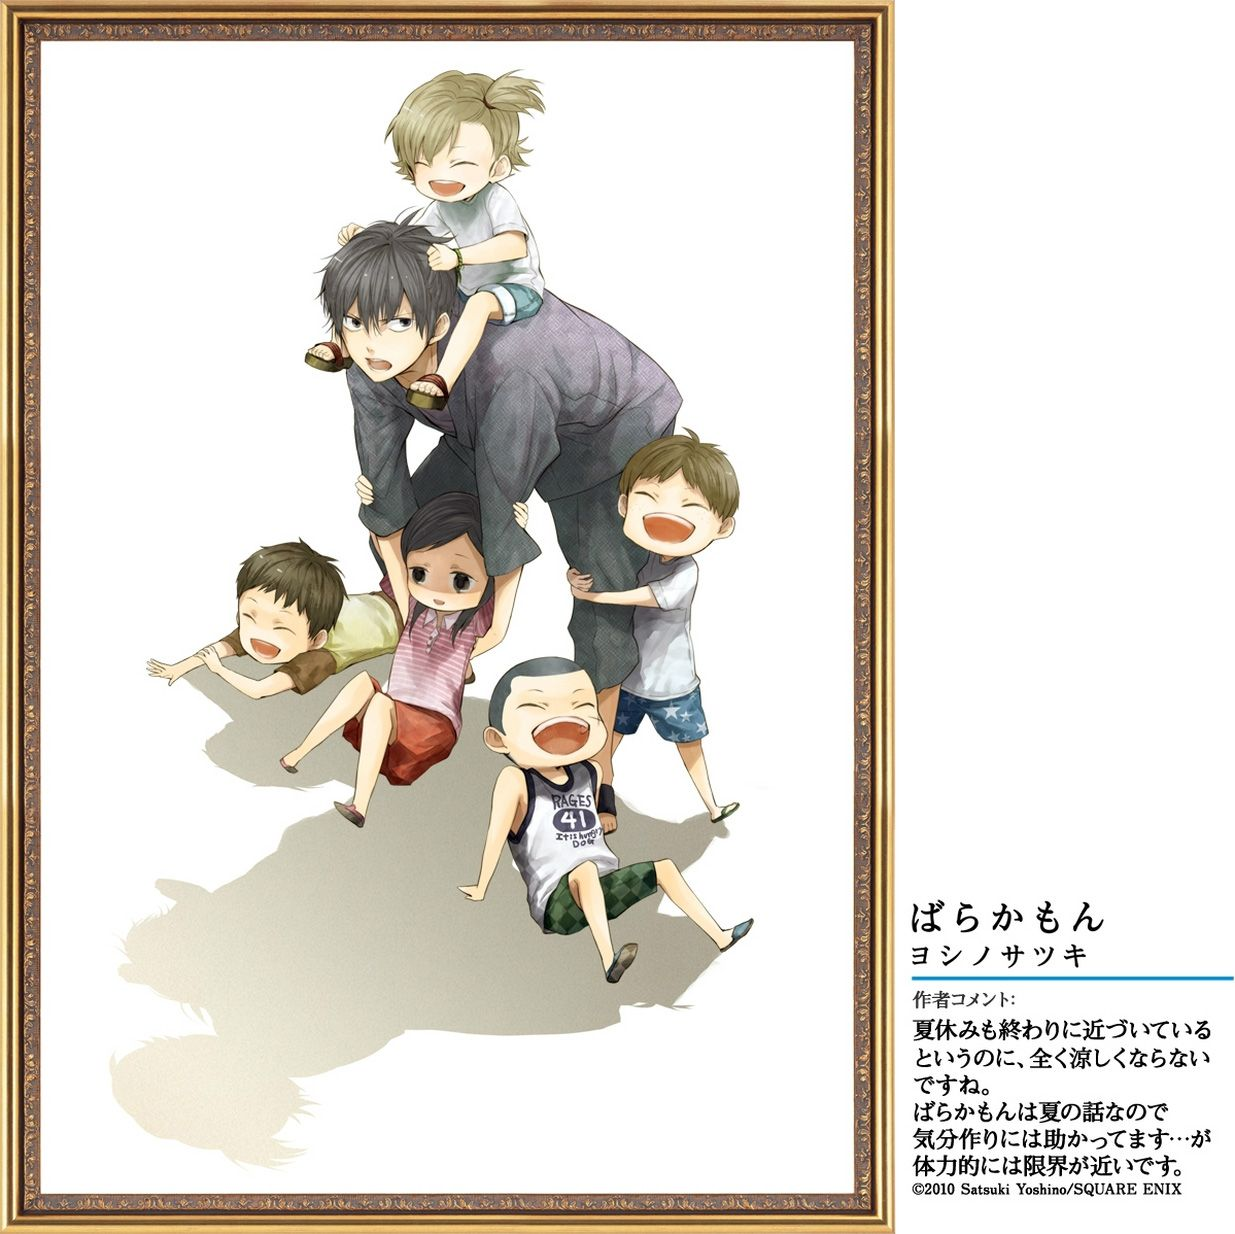 Barakamon Barakamon, Anime child, Anime